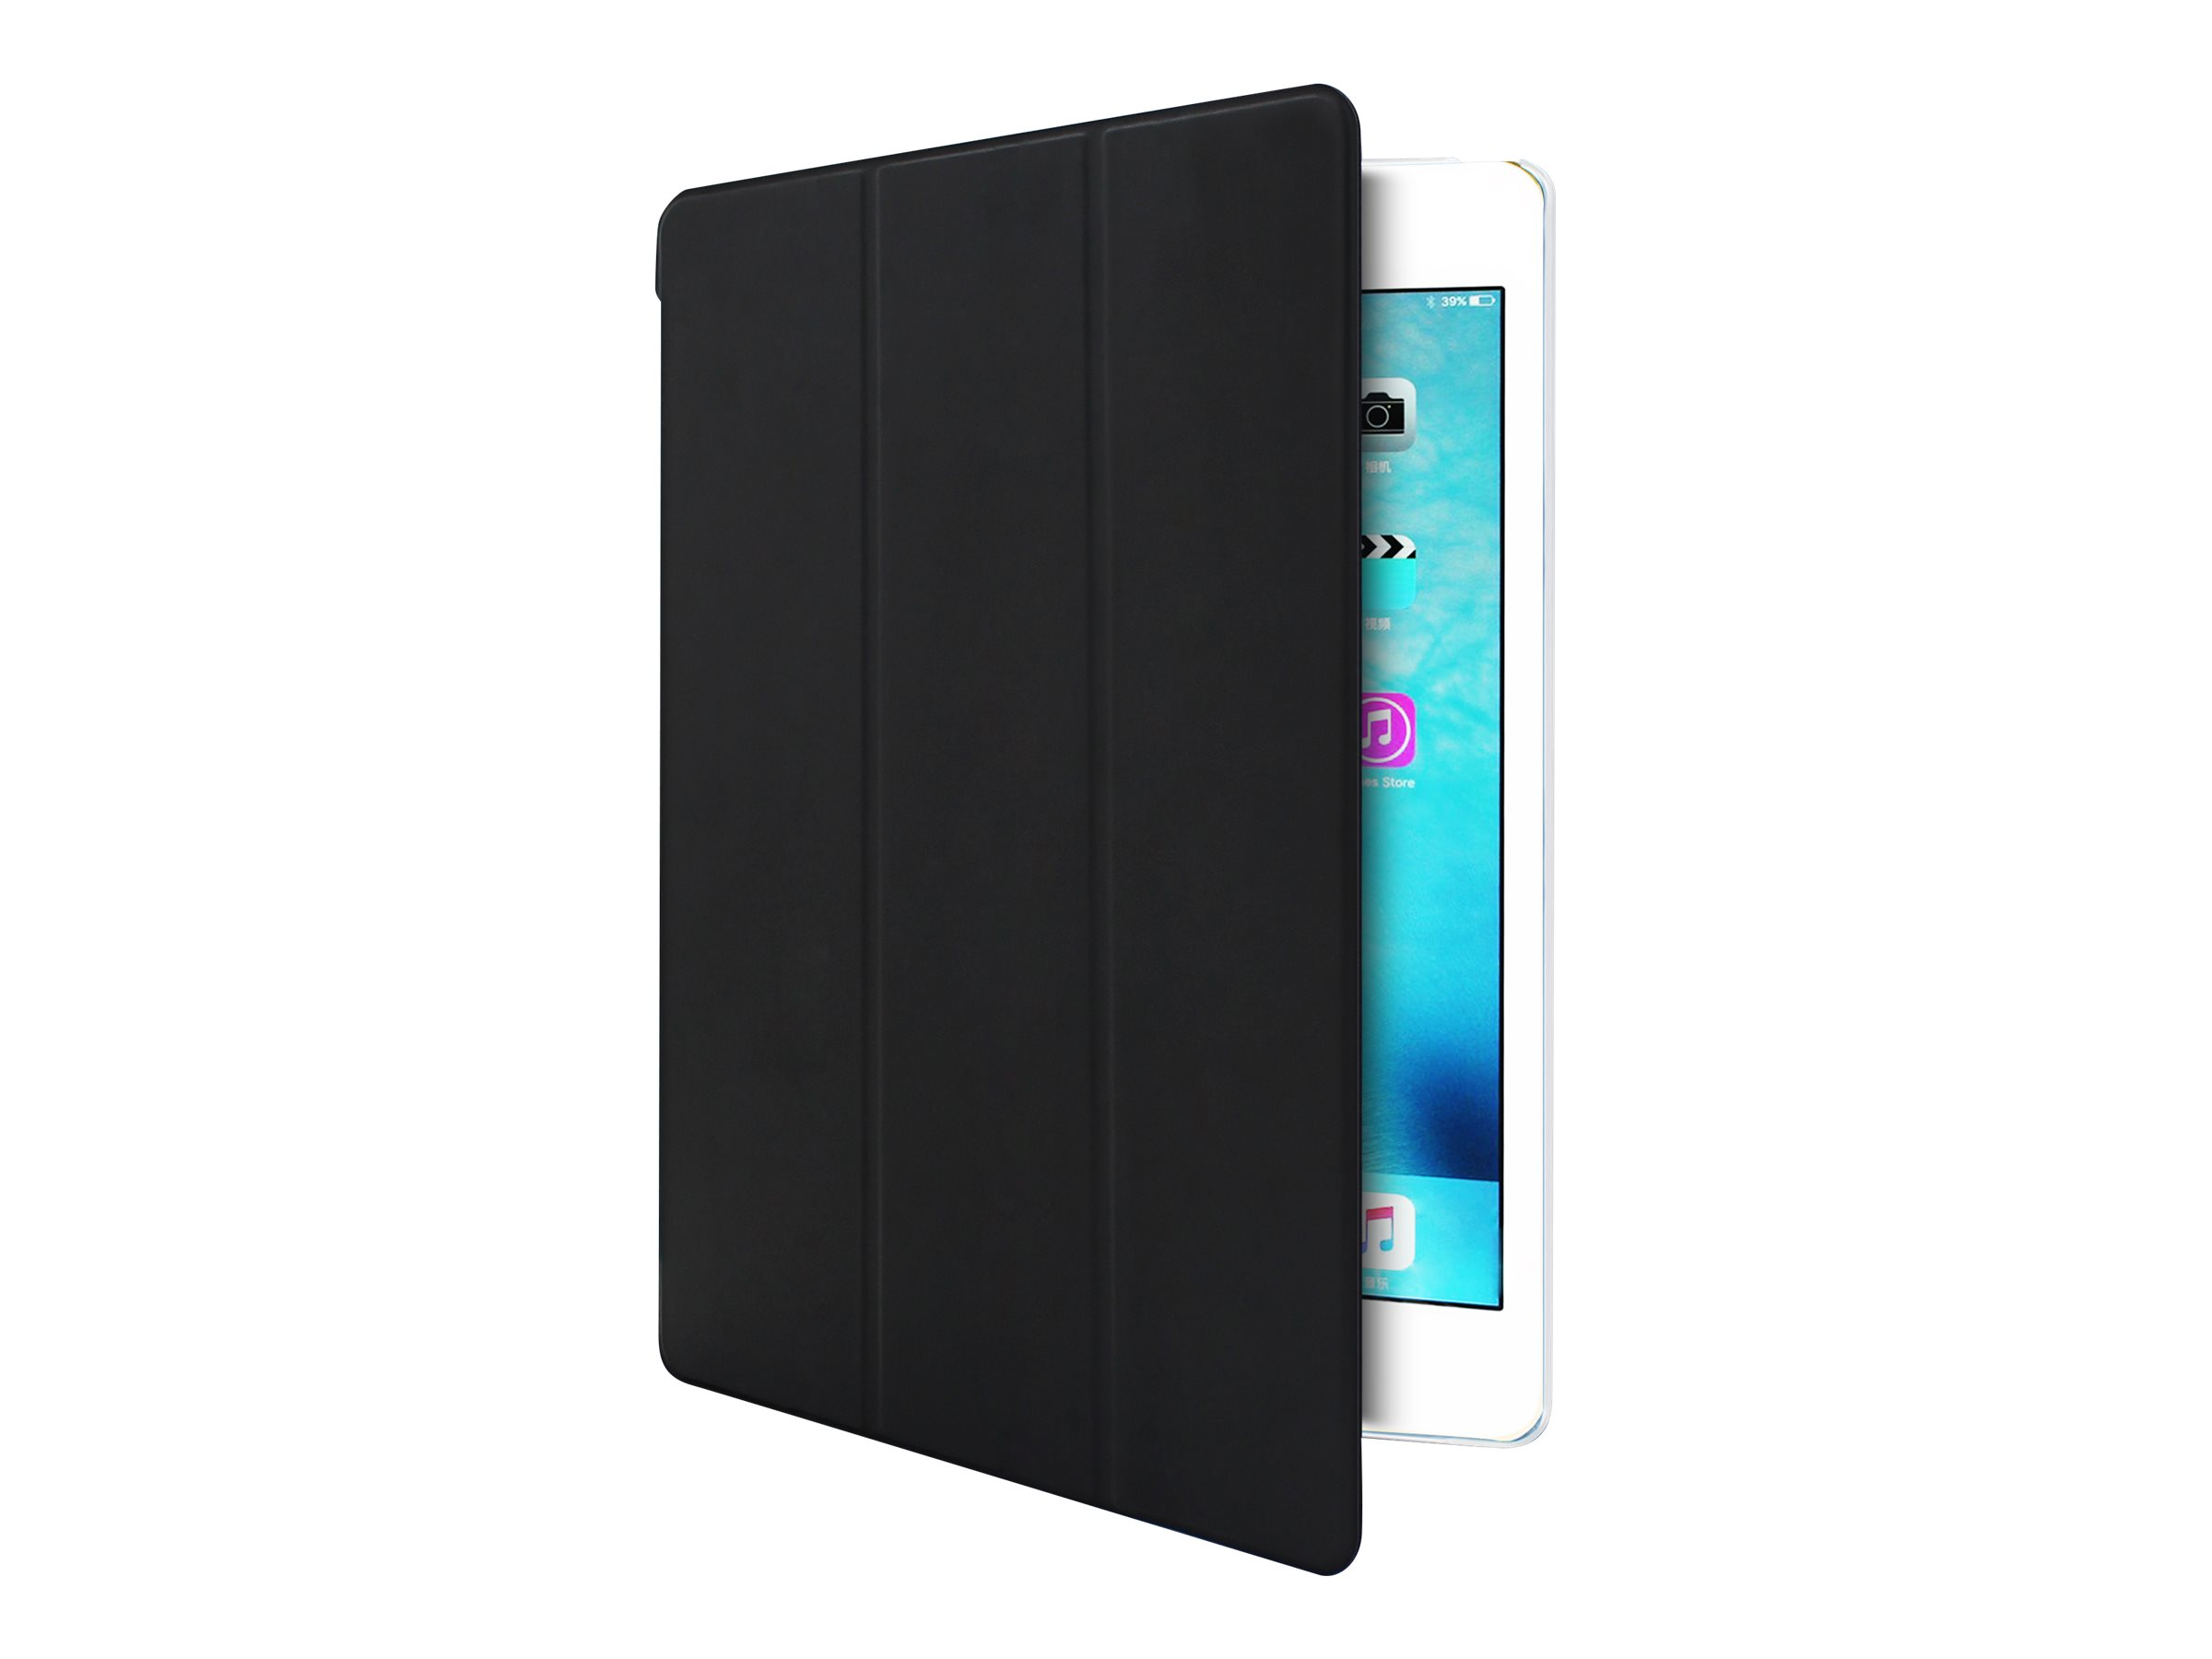 Muvit Smart Stand - Protection à rabat pour tablette pour iPadmini 4 - noir